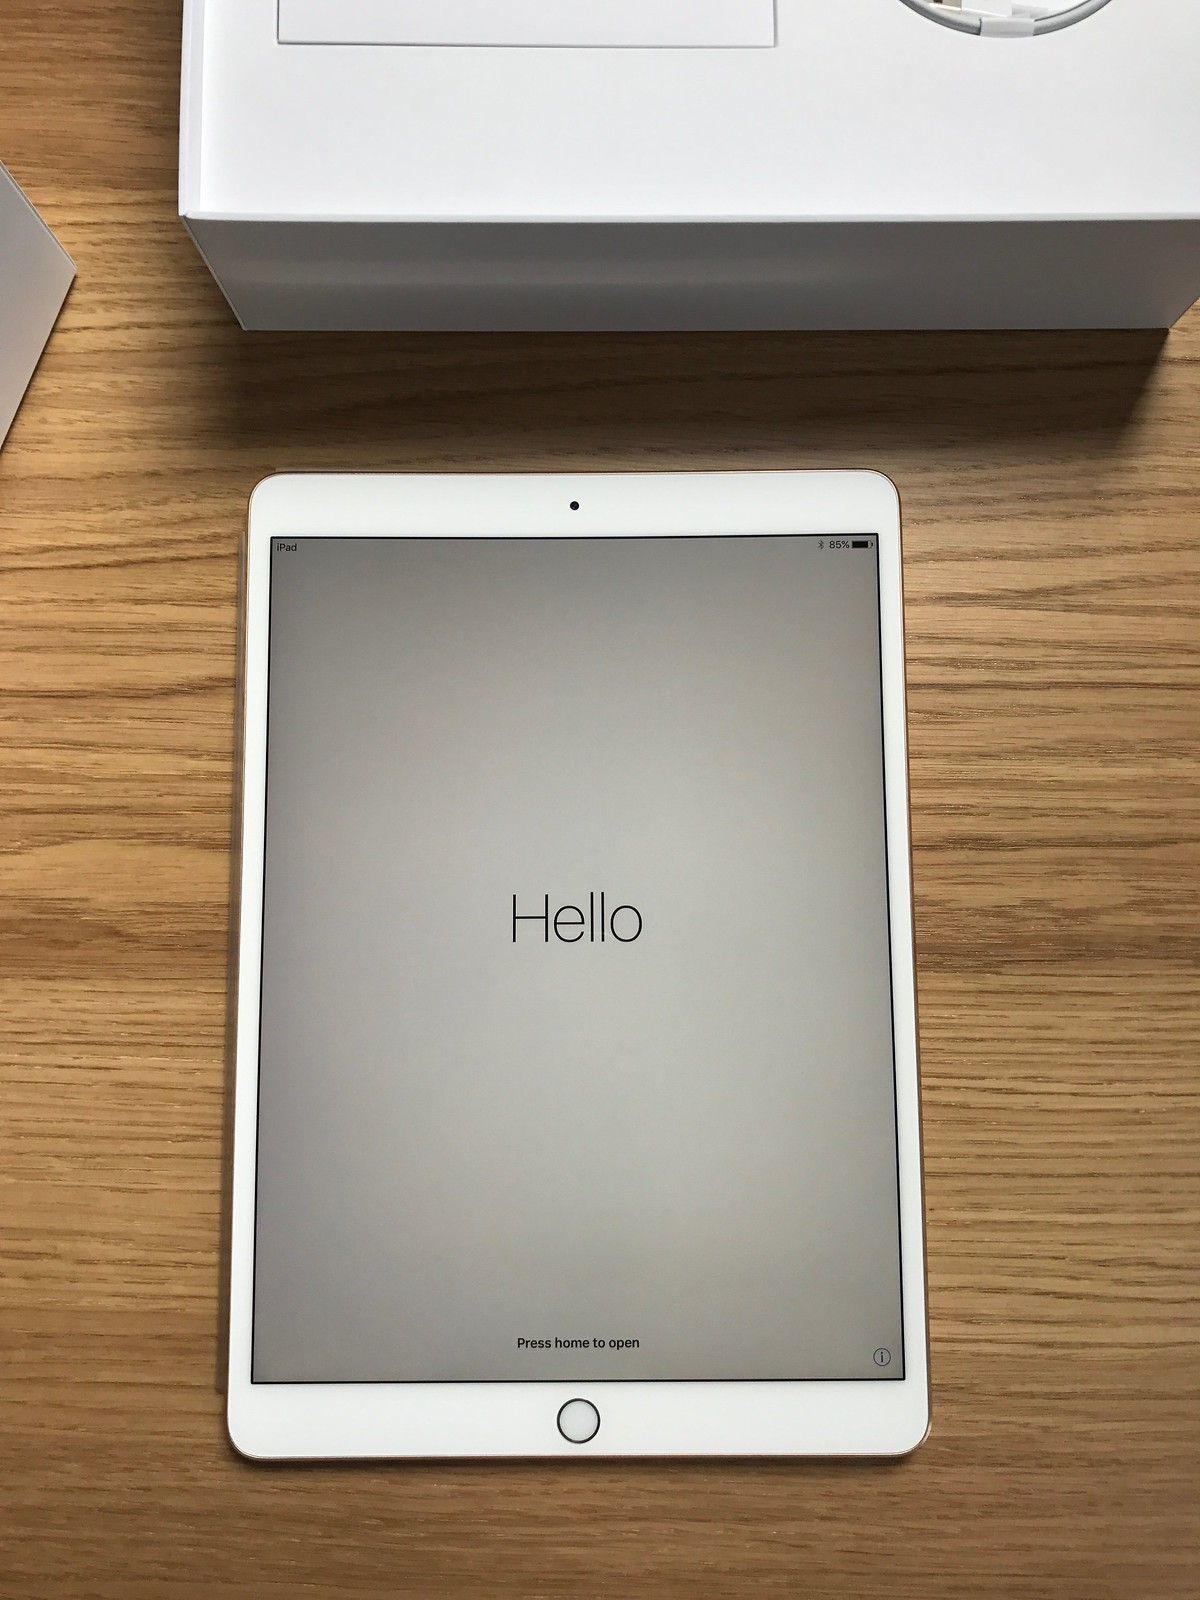 iPad Pro during initial setup, display the word Hello